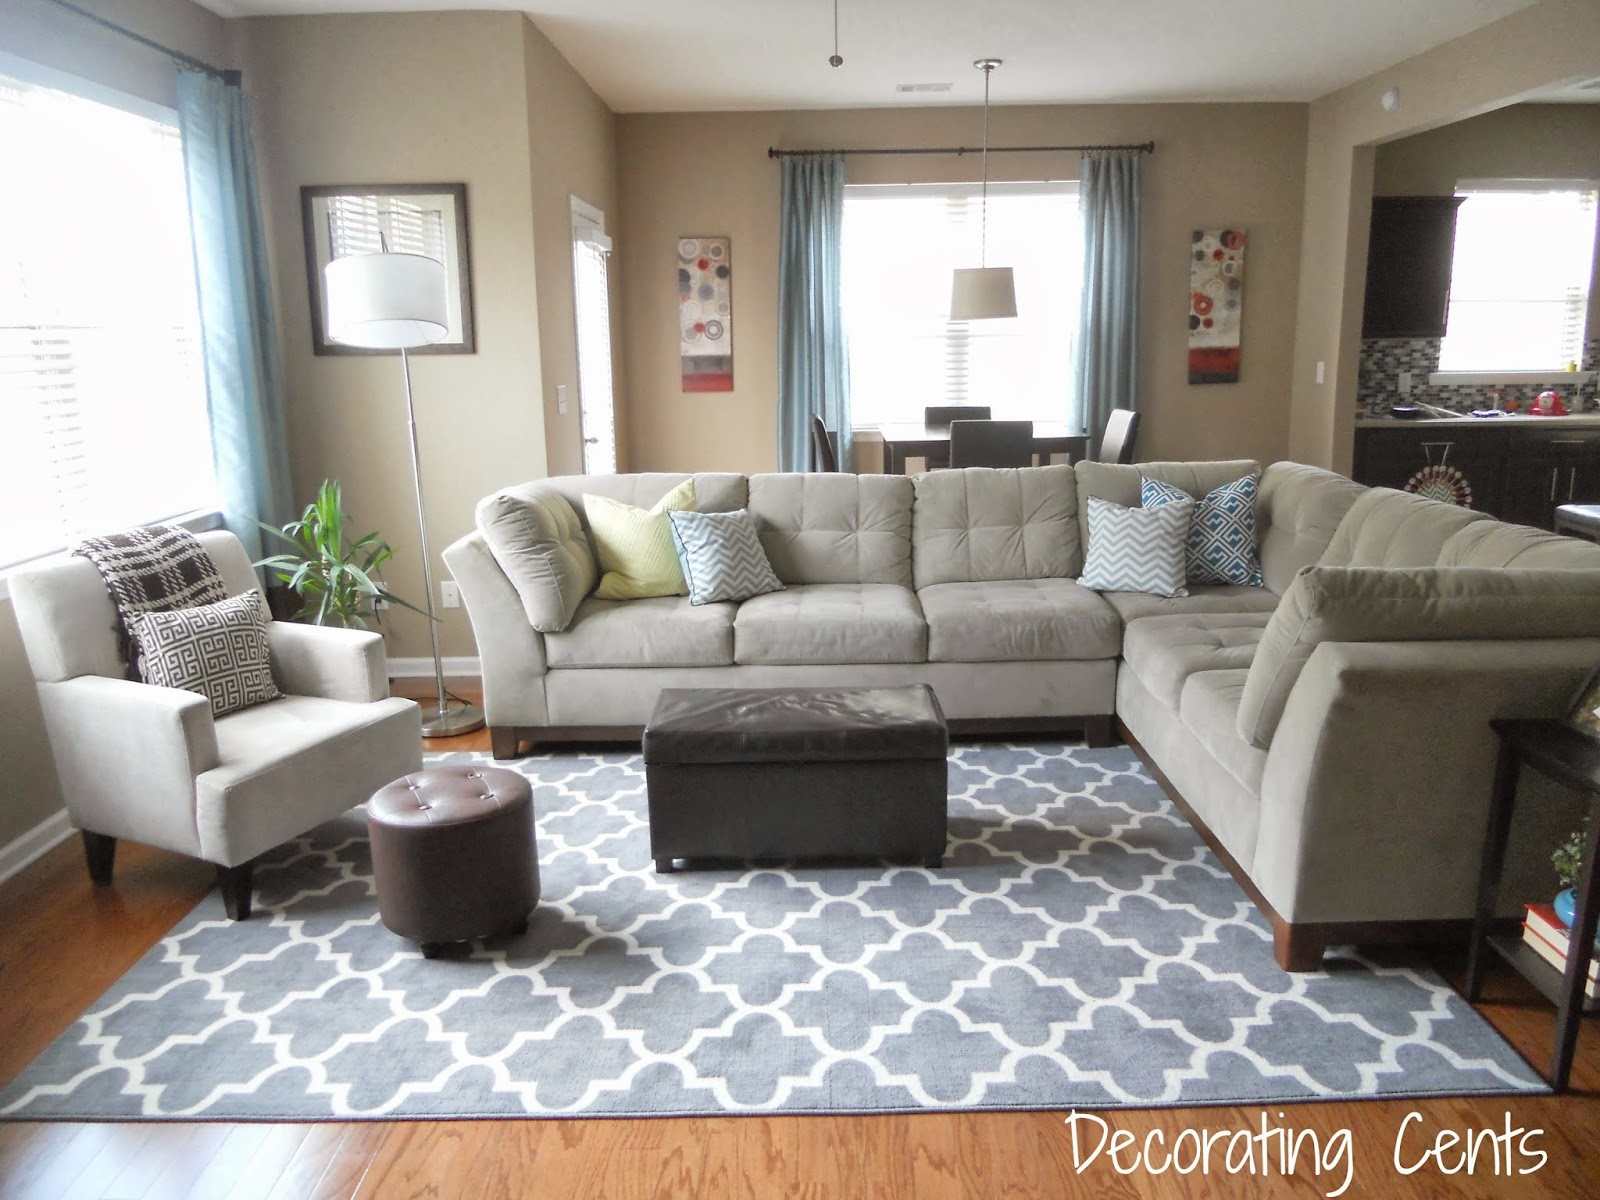 New family room rug - Living room area rugs ...